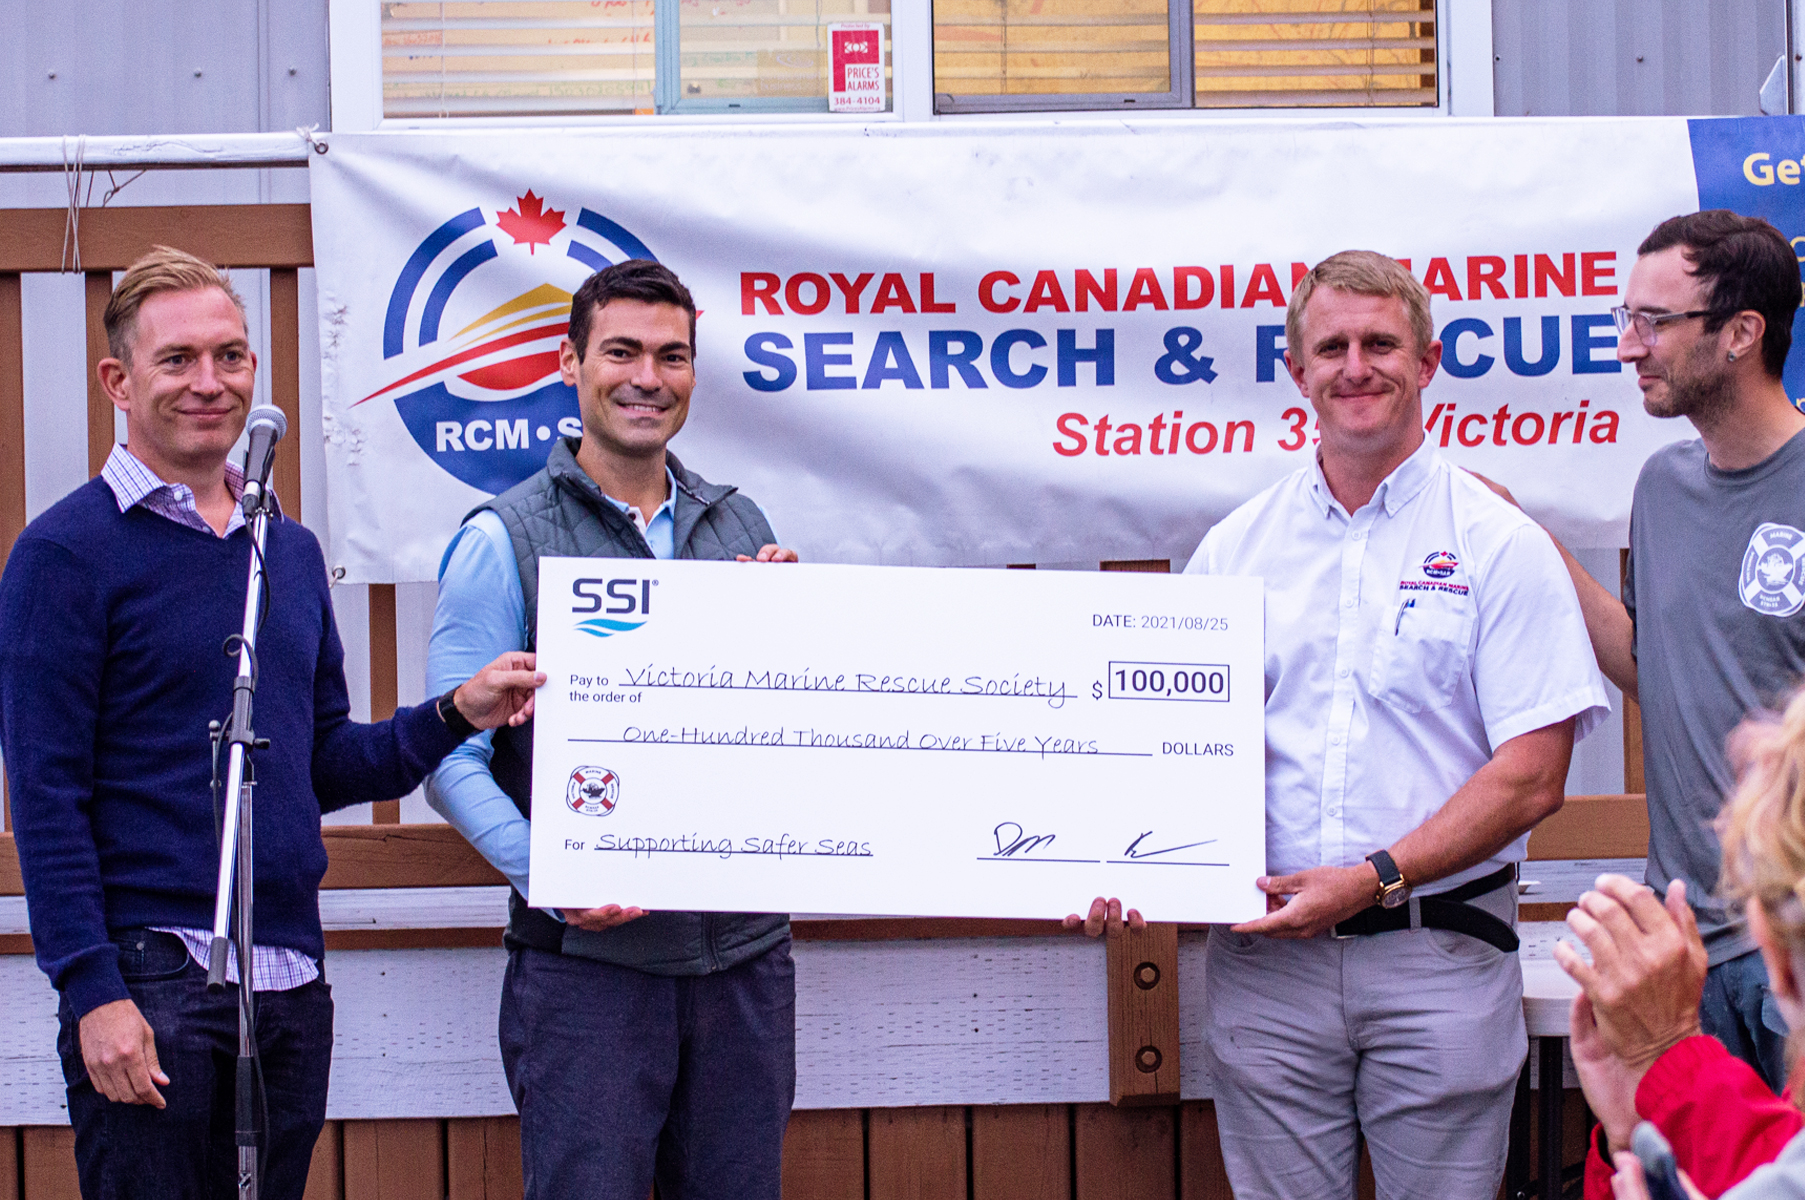 SSI co-CEOs hand big check  for 100,000 to VMRS and RCMSAR Station 35 lead